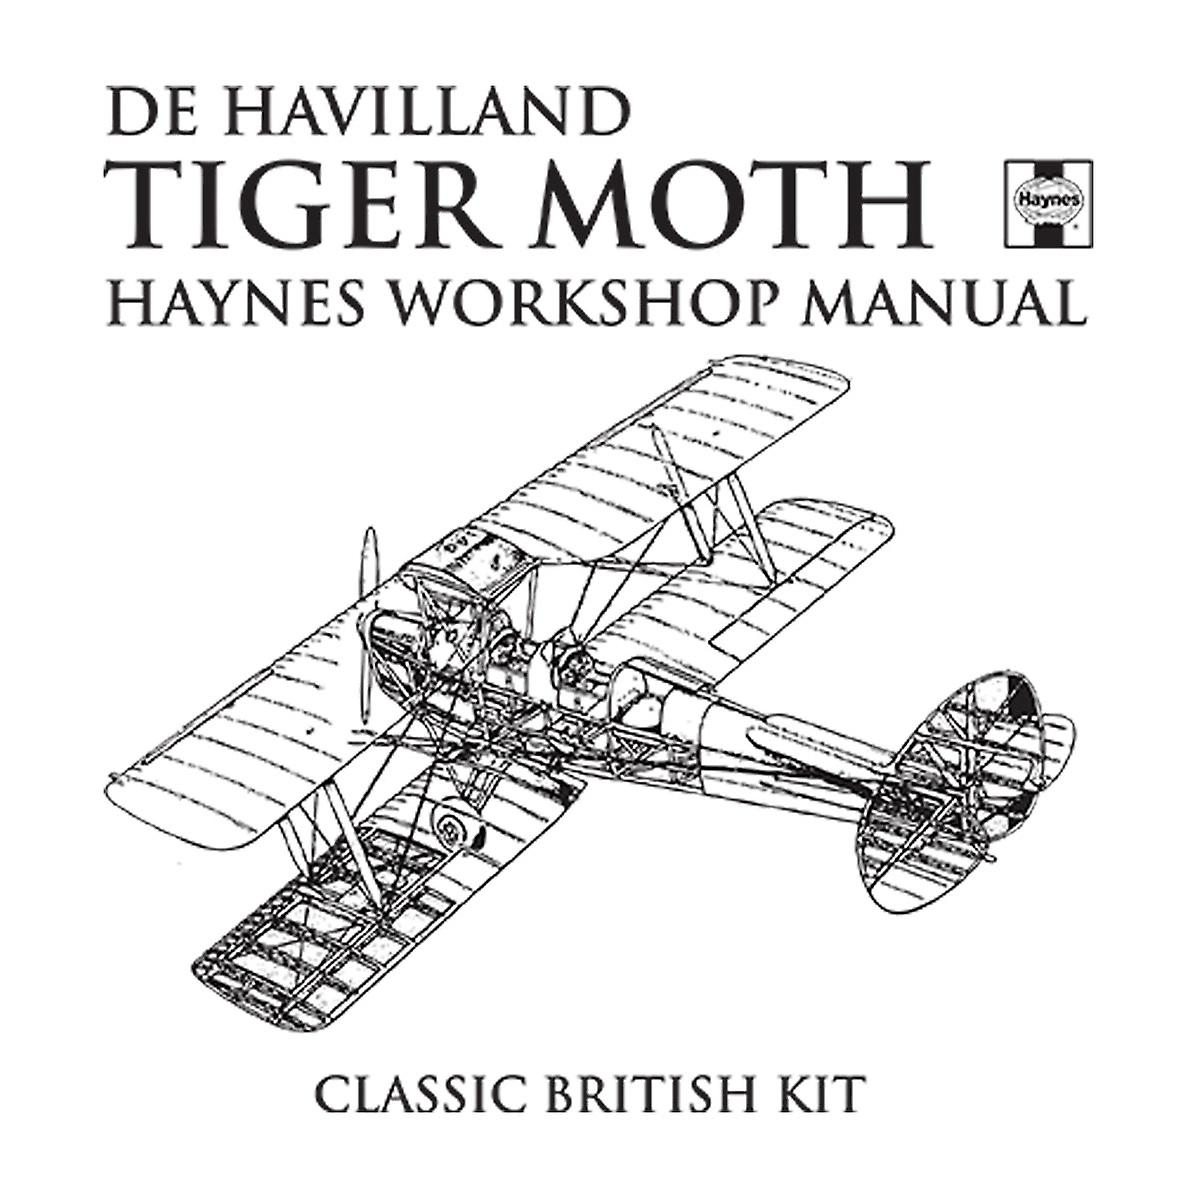 Haynes Owners Workshop Manual de Havilland Tiger Moth